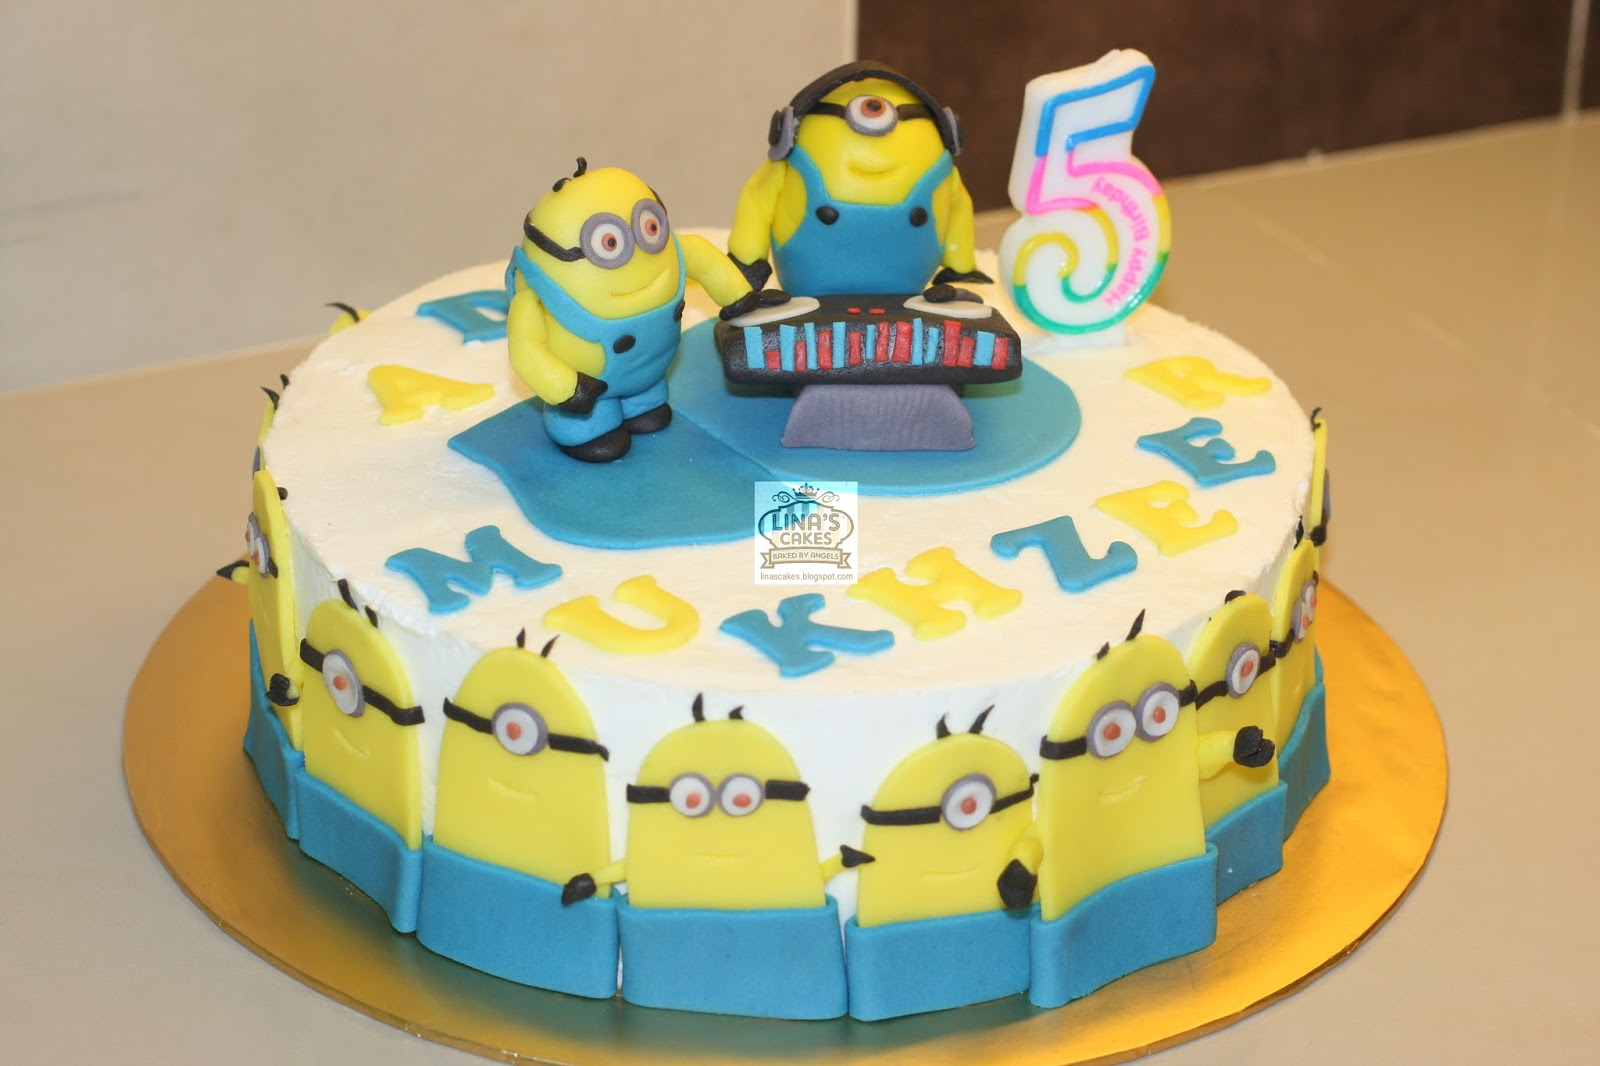 LinasCakes Baked by Angels Minion birthday cake